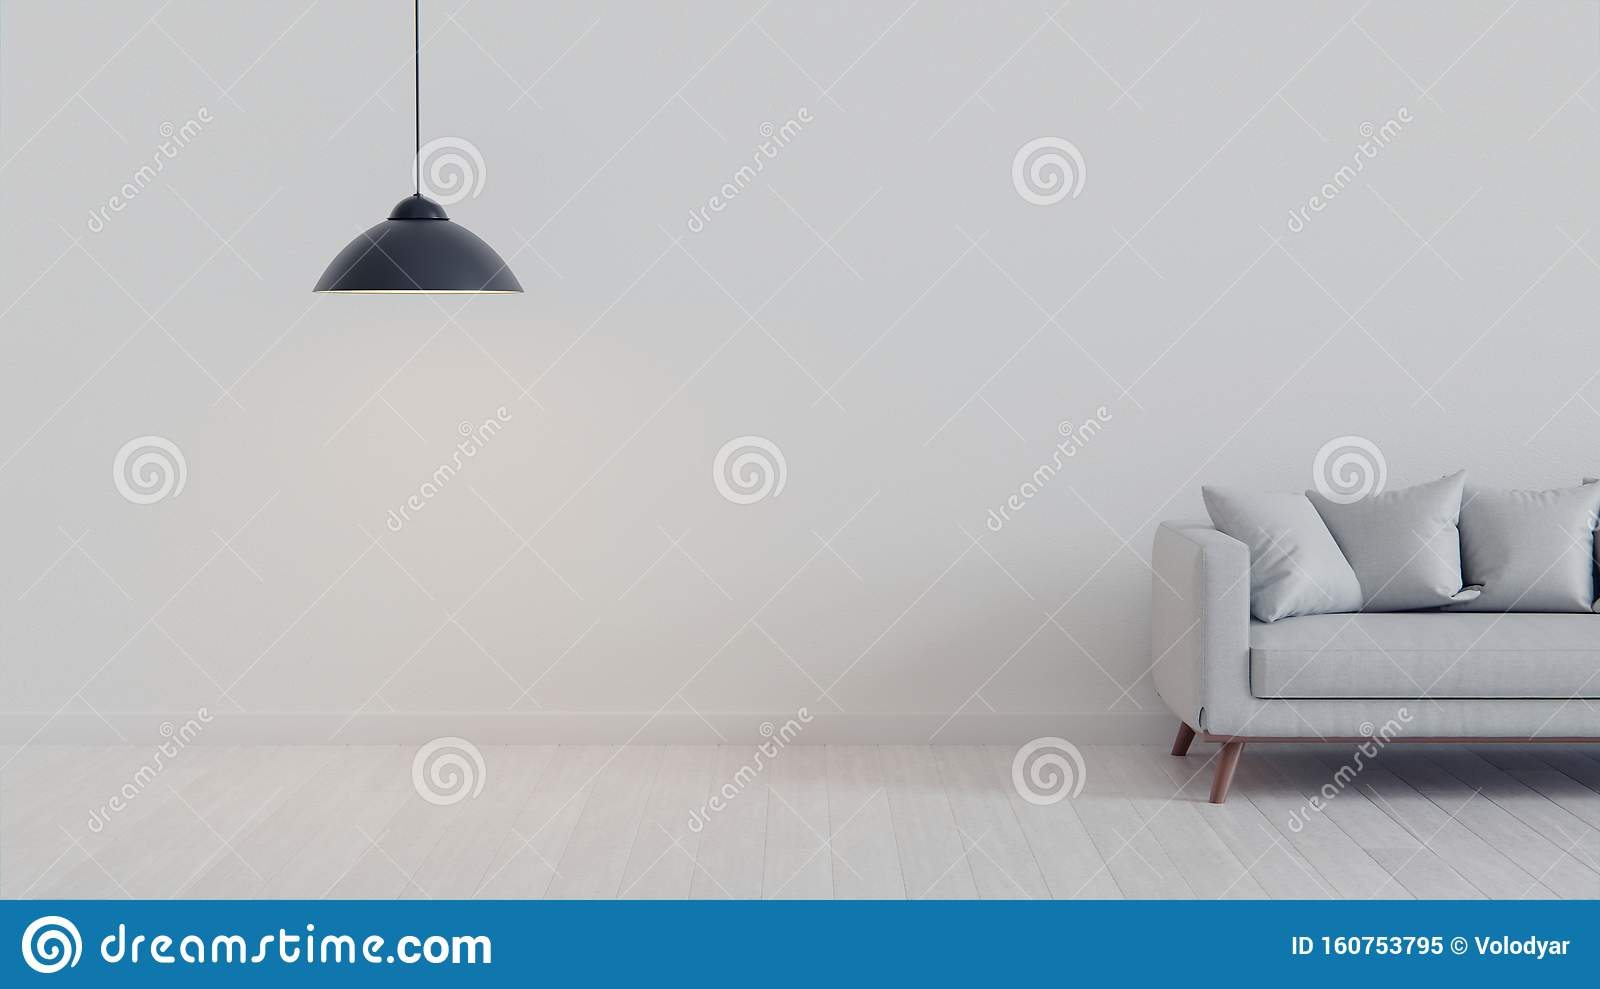 Pretty Simple Decor Of Living Room With Blue Sofa And Light Blue Wall Stock Illustration Illustration Of Home Decor 160753795